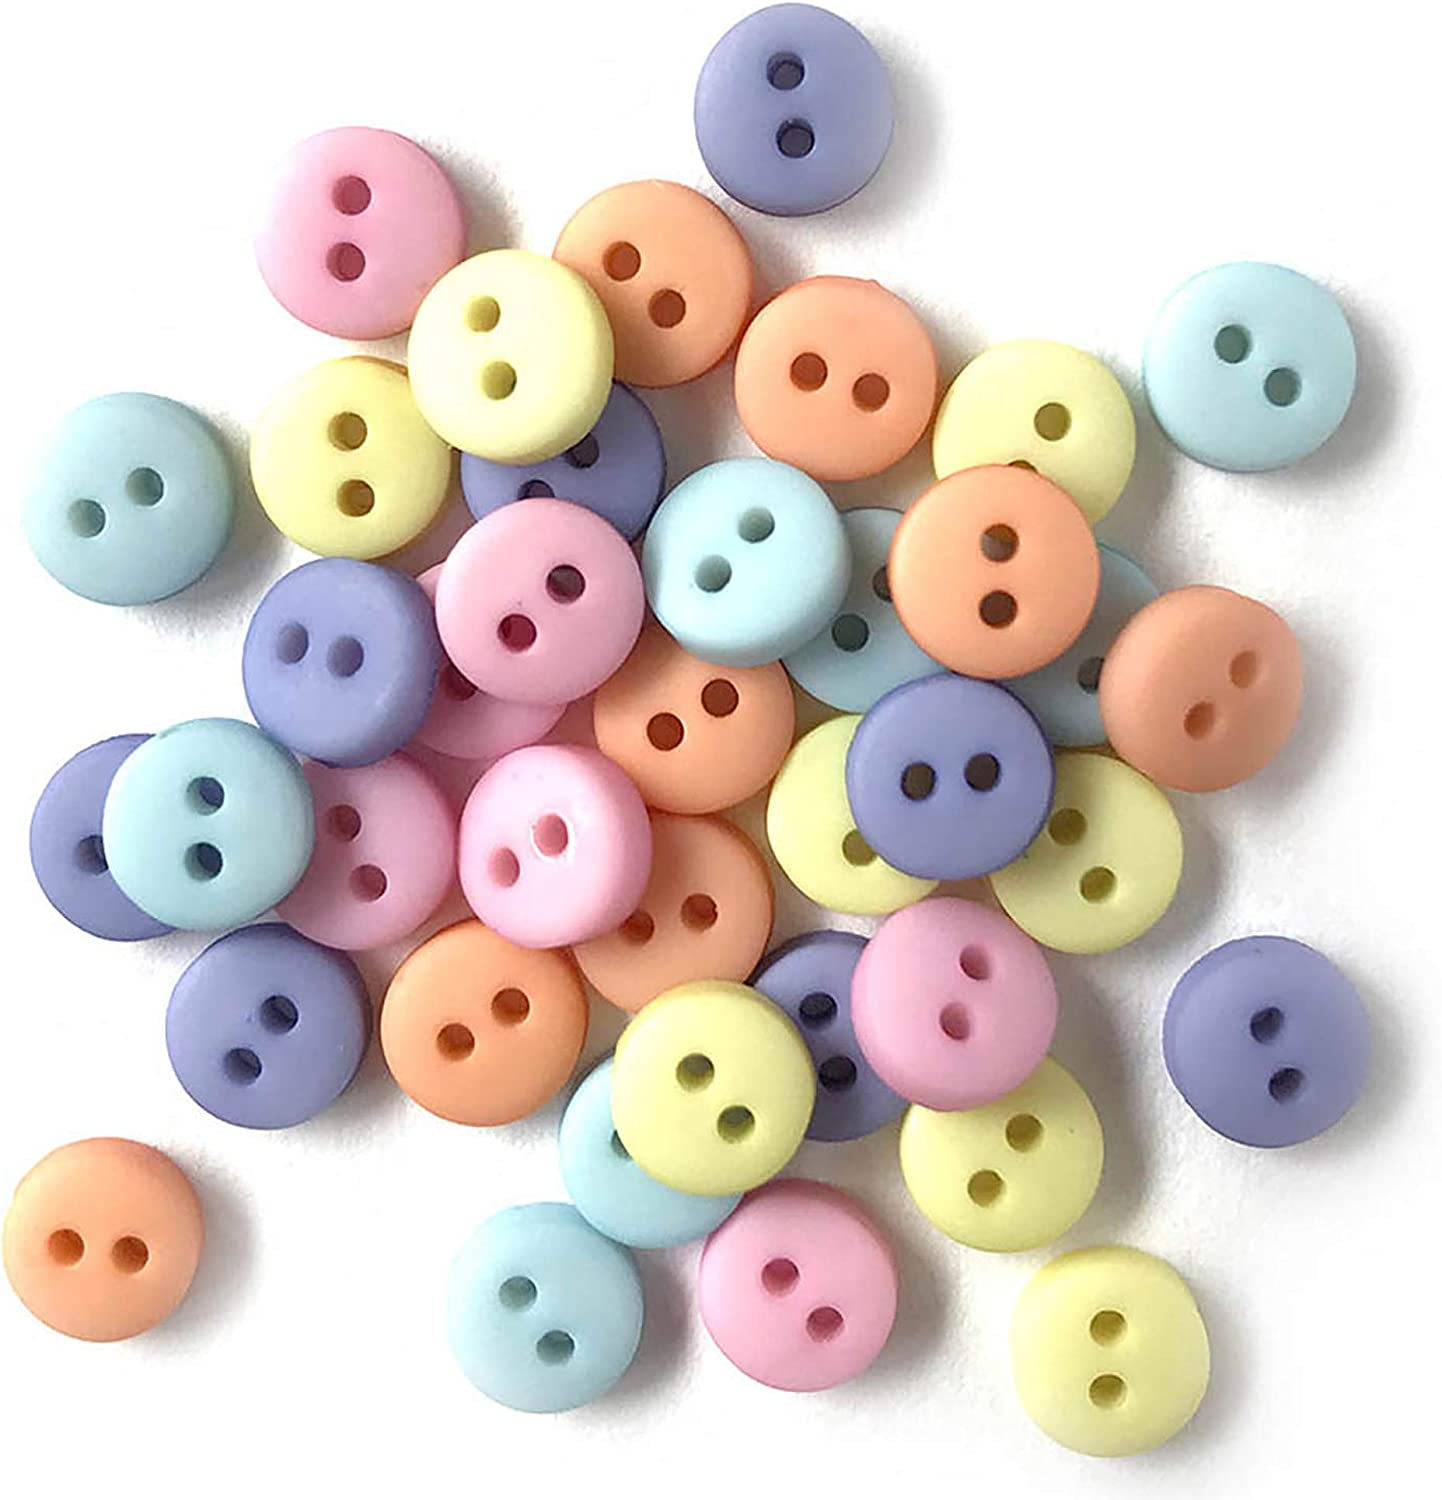 Tiny Micro Mini Hearts Sewing Buttons Craft Buttons Card Making Scrapbooking